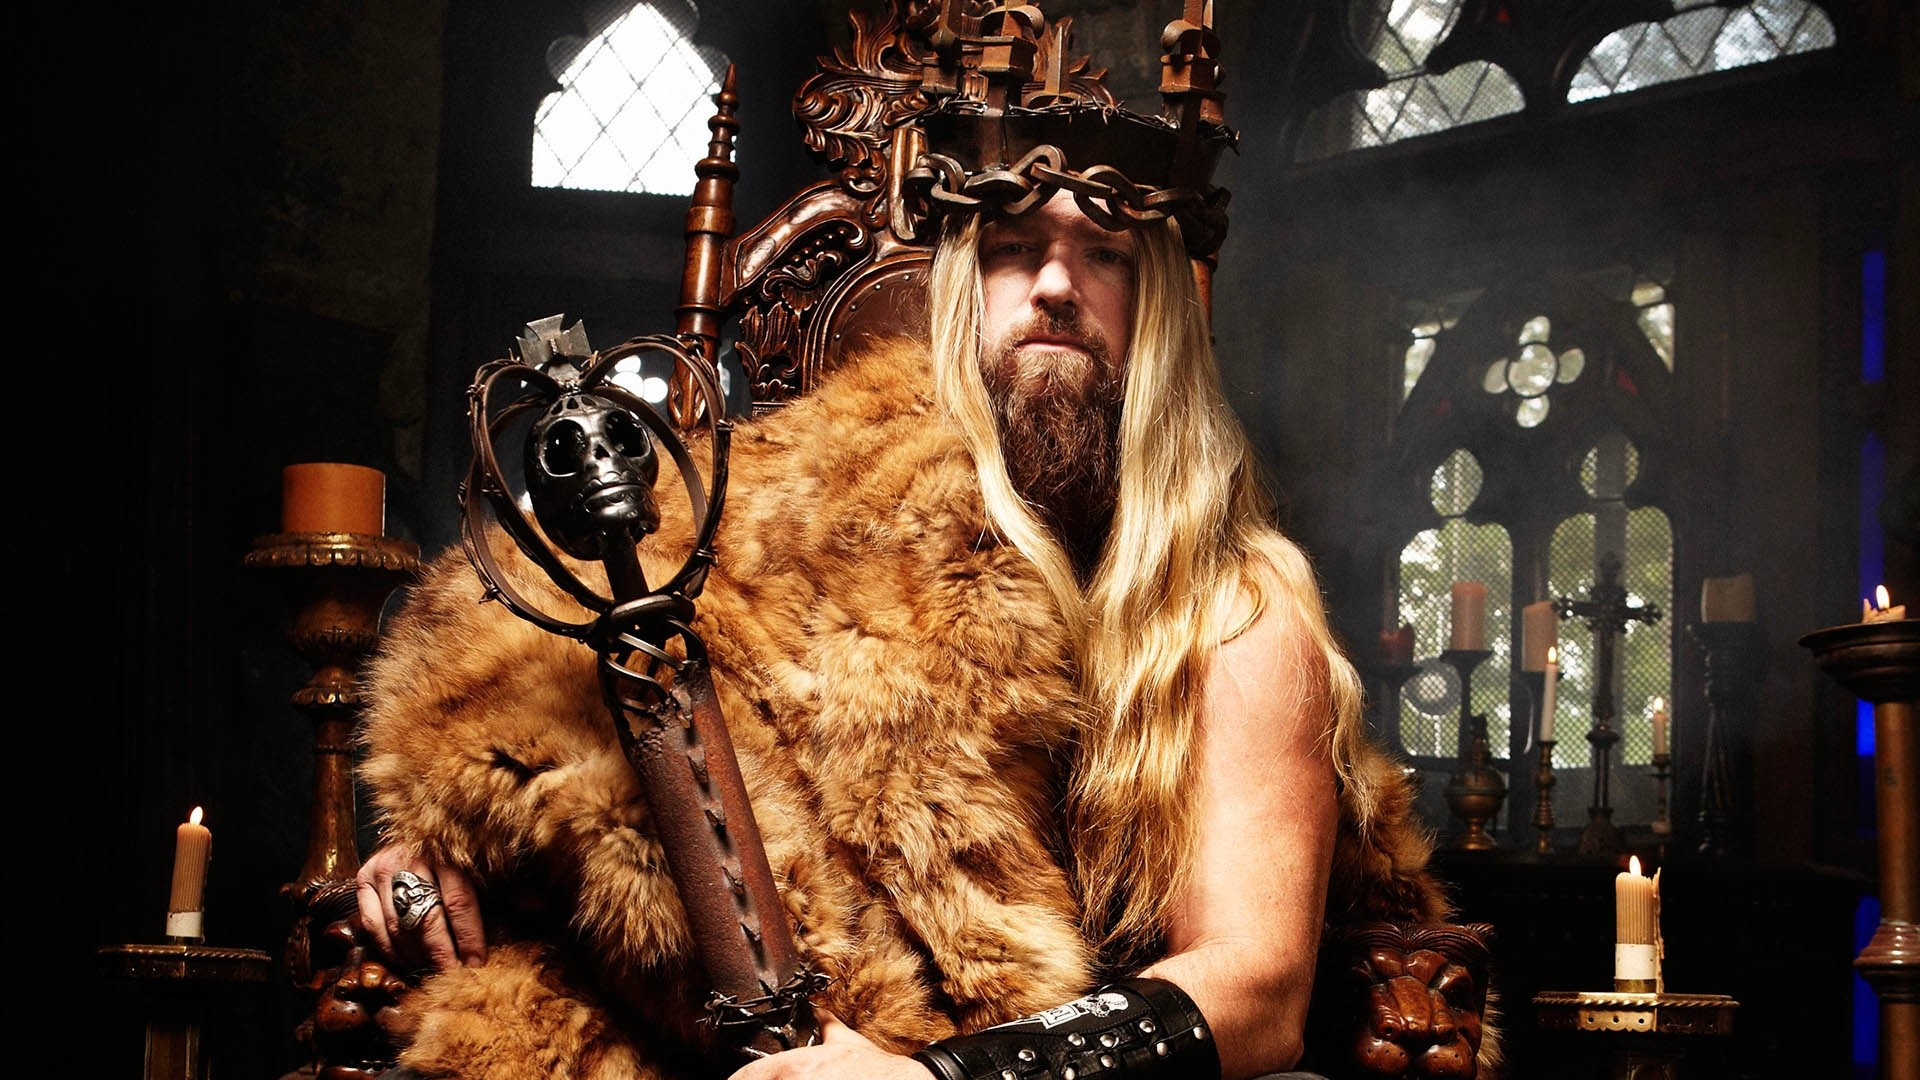 1920x1080  Wallpaper zakk wylde, throne, fur, candles, windows